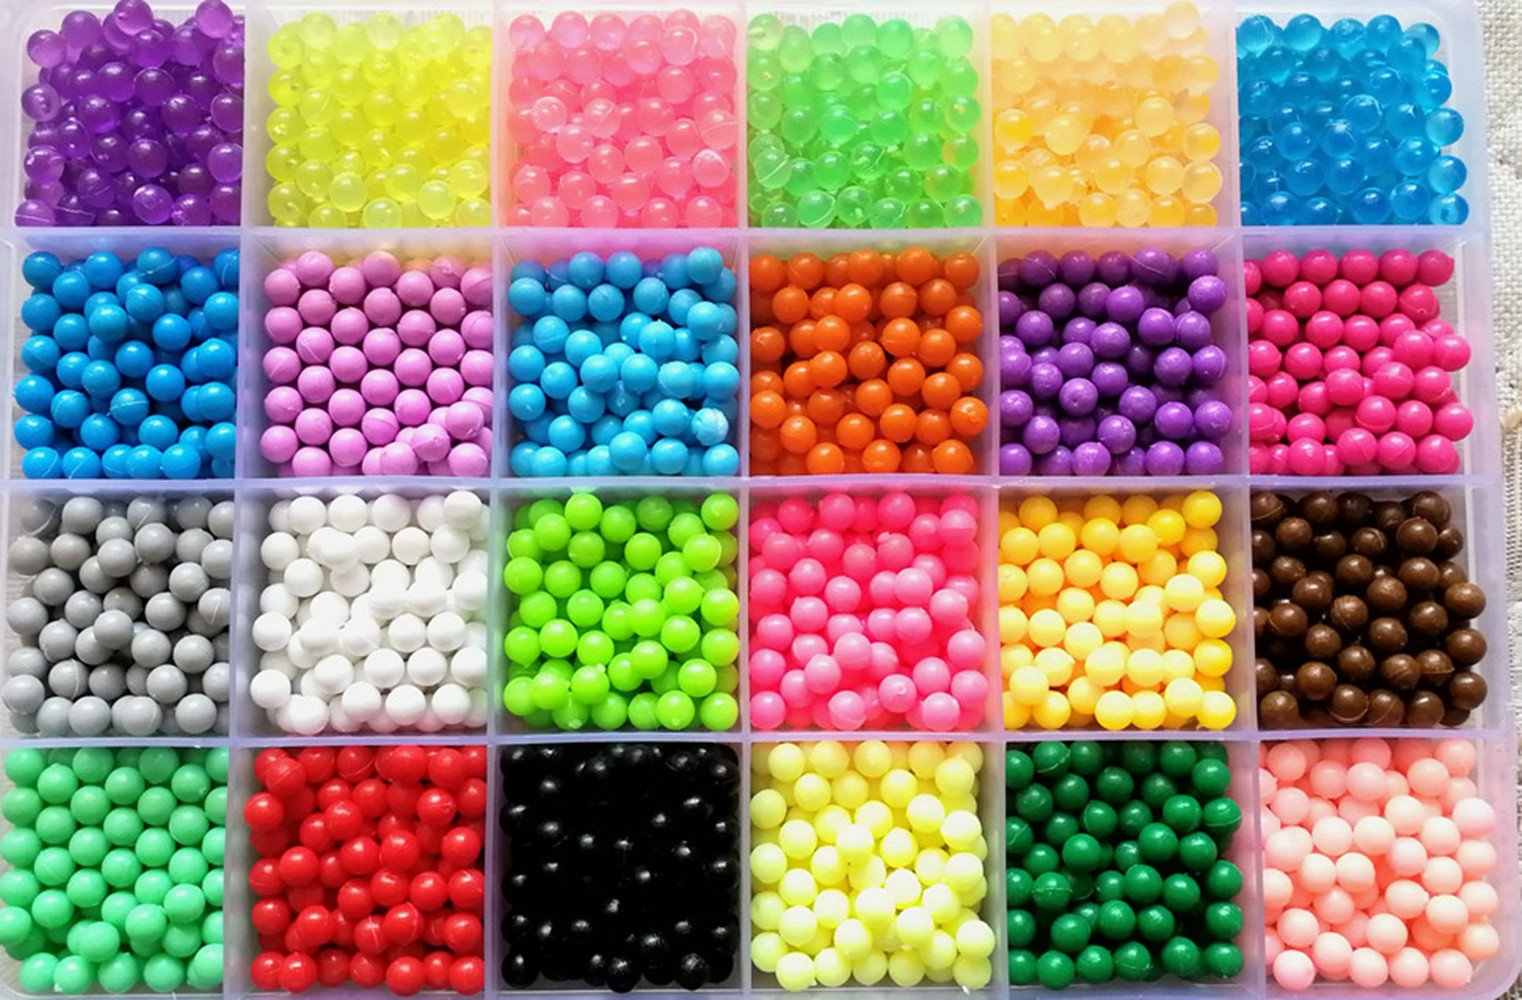 Vytung Water Fuse Bead 3600 Beads 24 Colors(6 Glow in Dark) 148 Designs Spray and Stick Refill Beads for Kids Beginners Activity Pack (24 Color Pack)